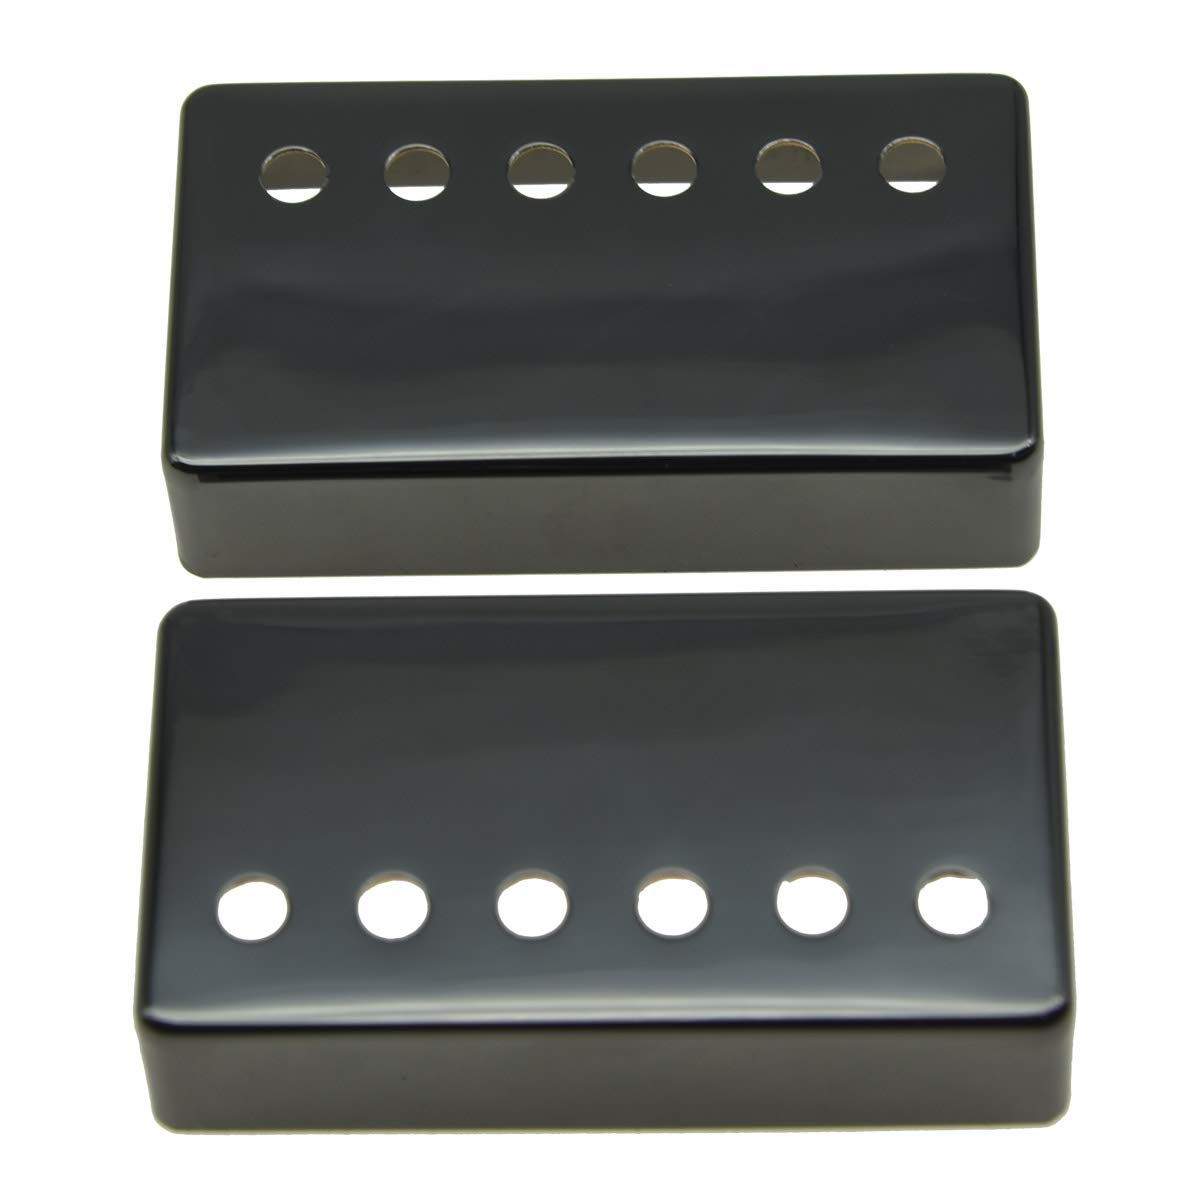 ships from USA 12-Hole Chrome Humbucker Guitar Pickup Cover 52mm Spacing